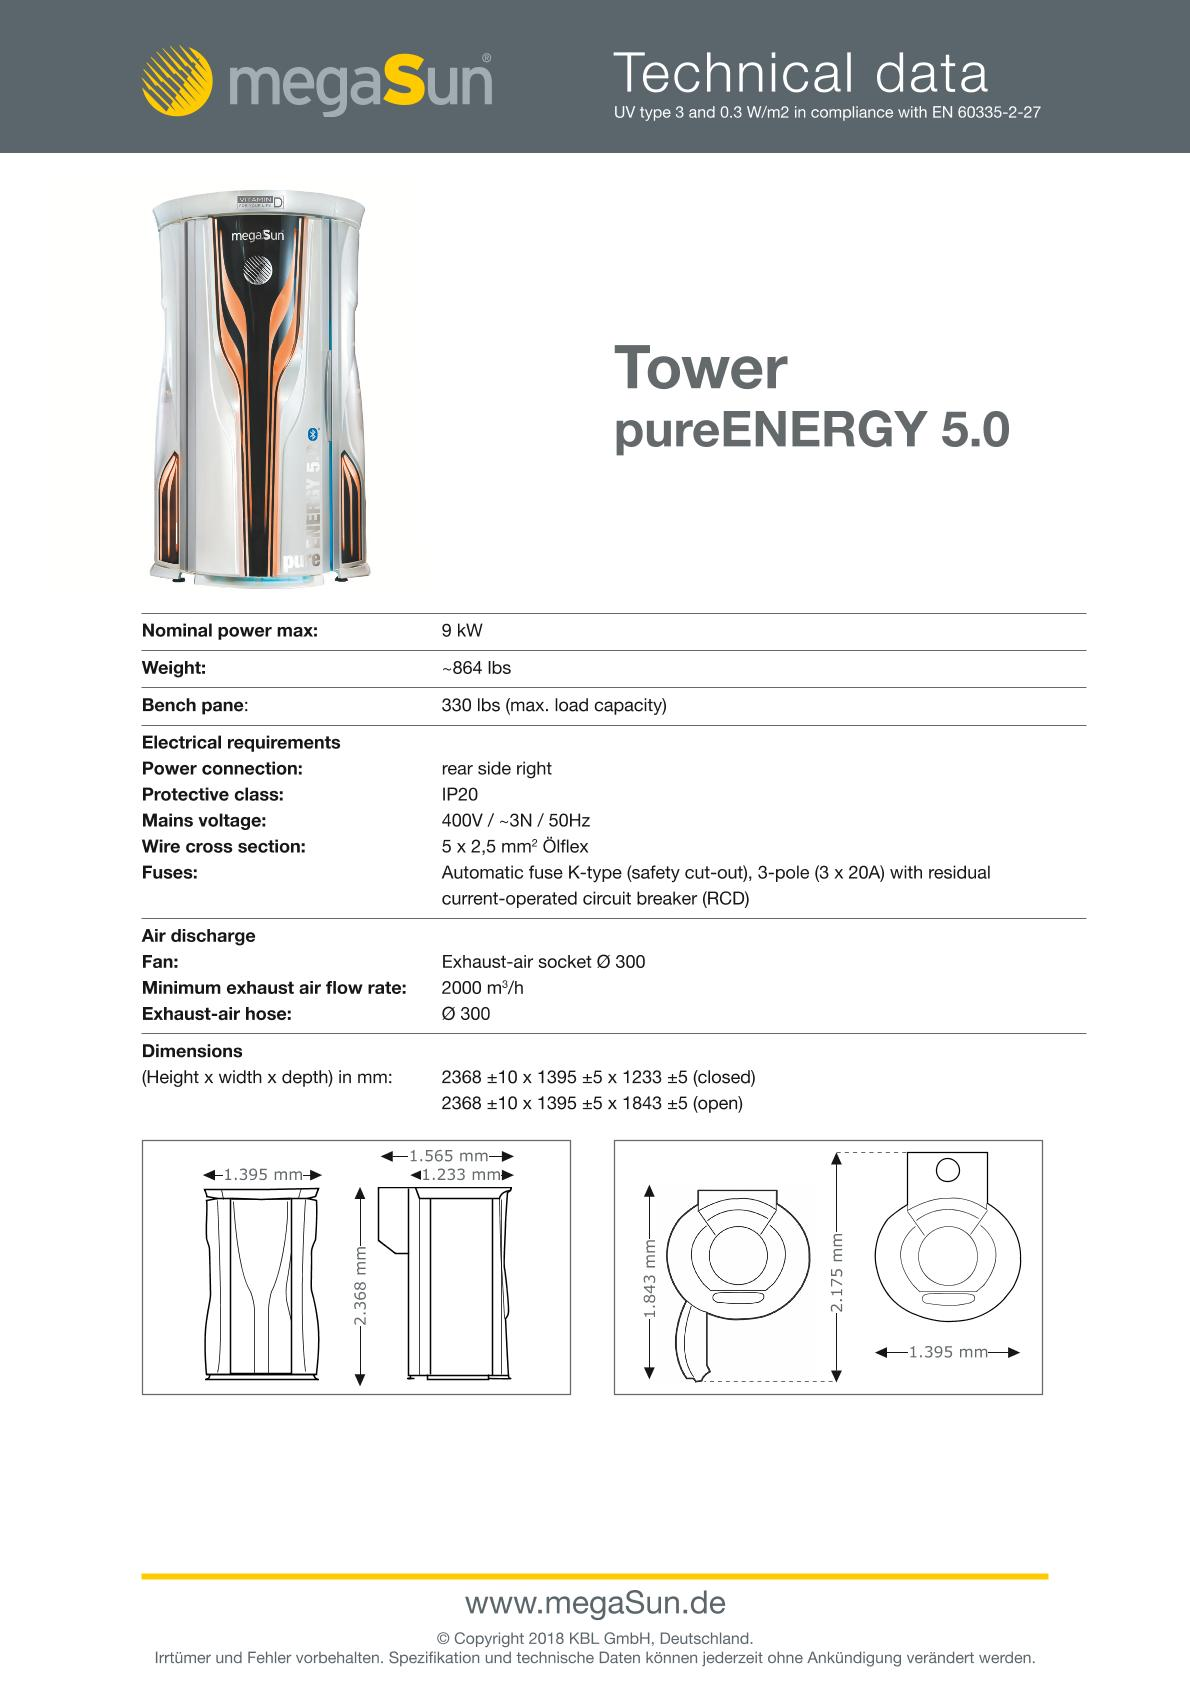 techn_data_Tower_pureEnergy-en.pdf